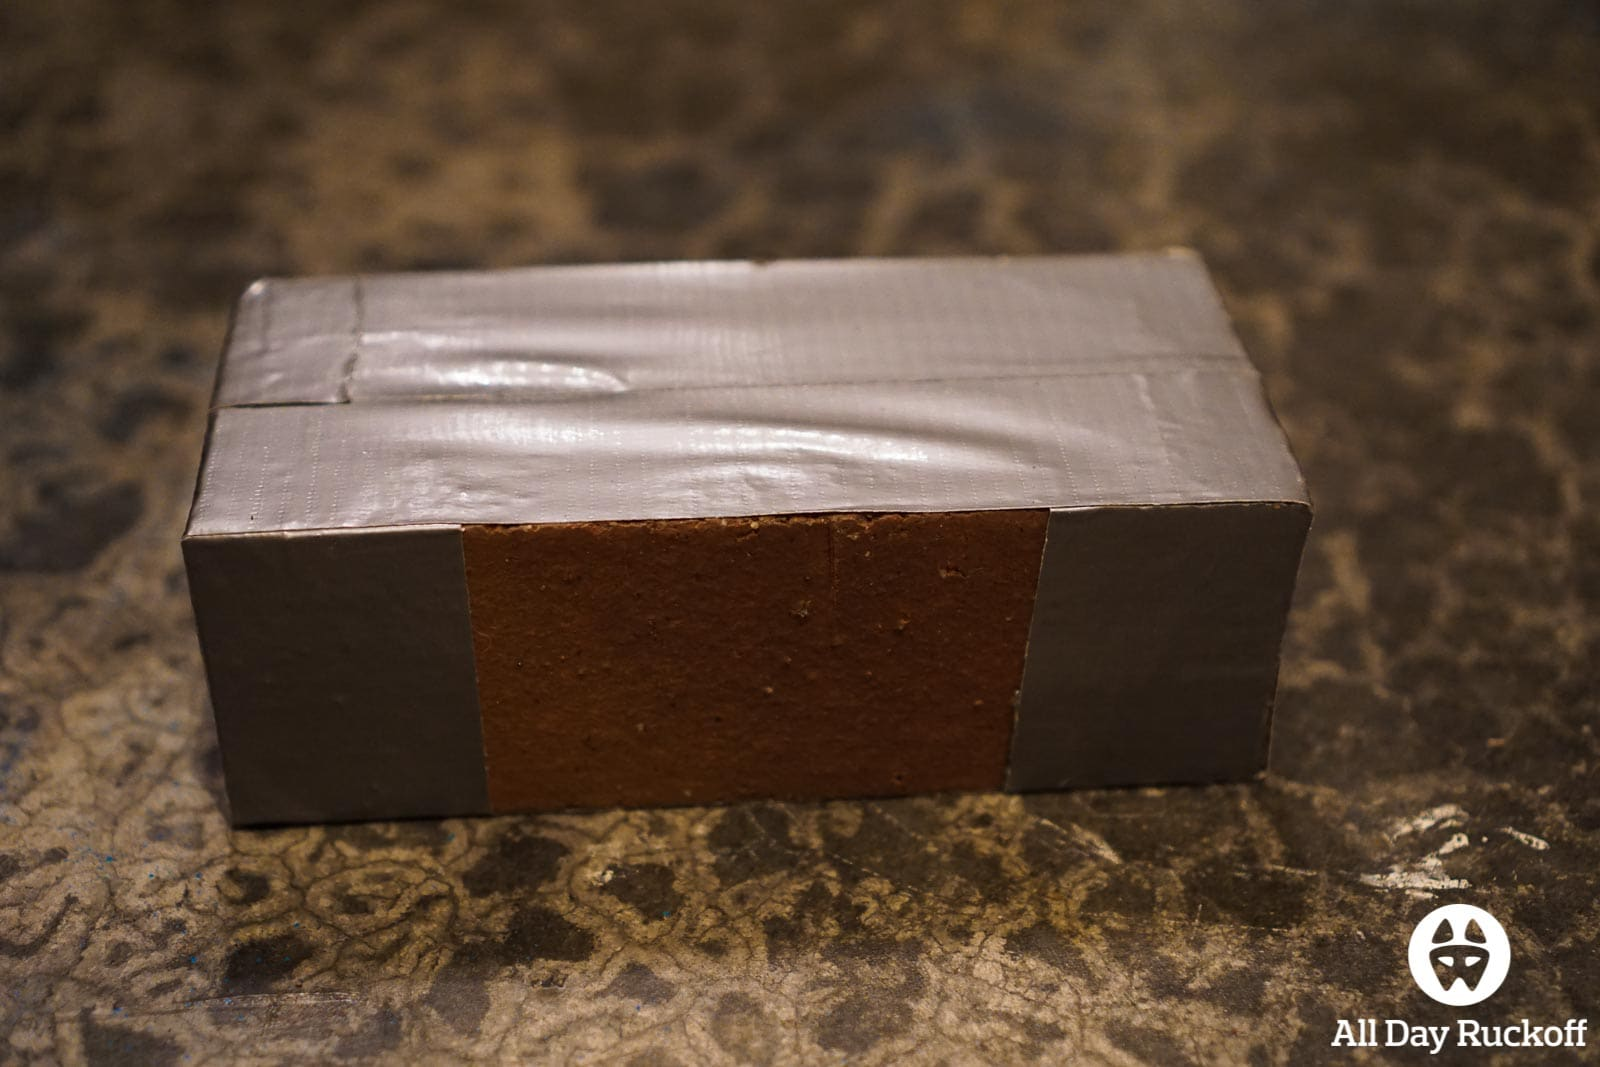 Wraping Bricks GORUCK - Covered Lengths